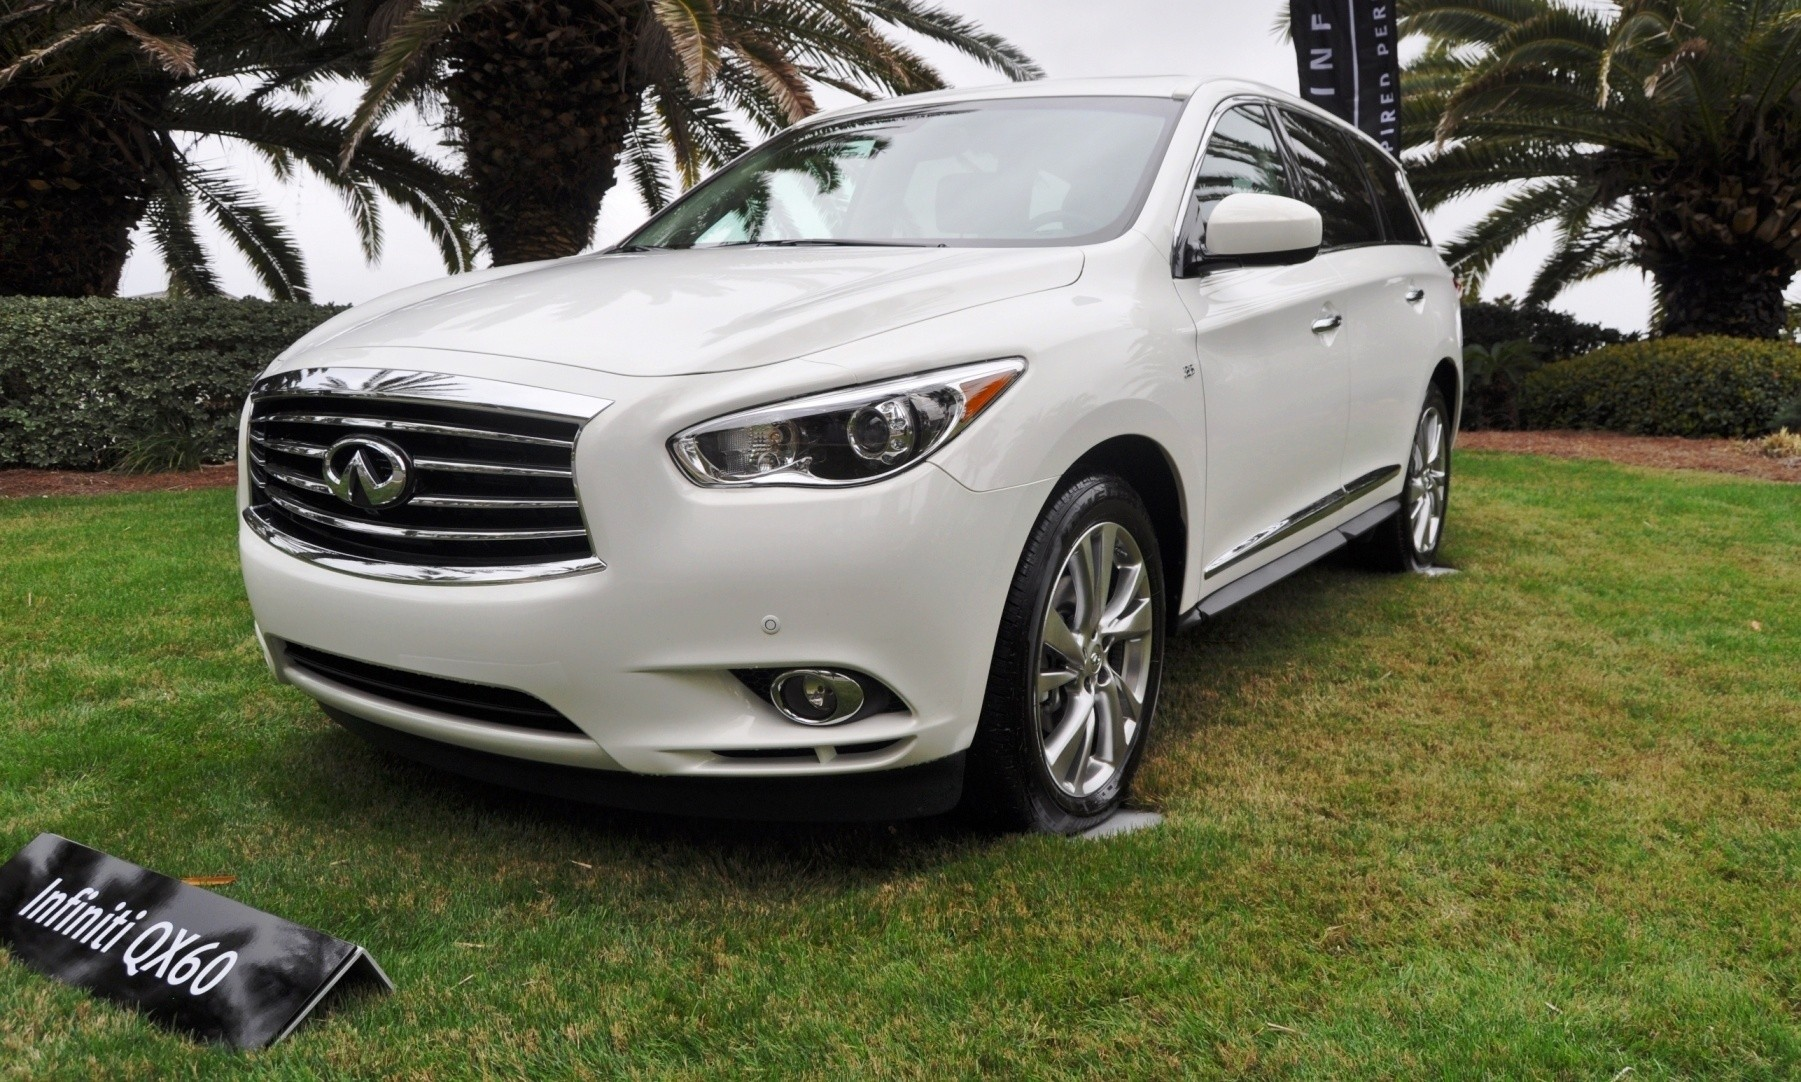 2015 infiniti qx60 buyers guide colors pricing options. Black Bedroom Furniture Sets. Home Design Ideas